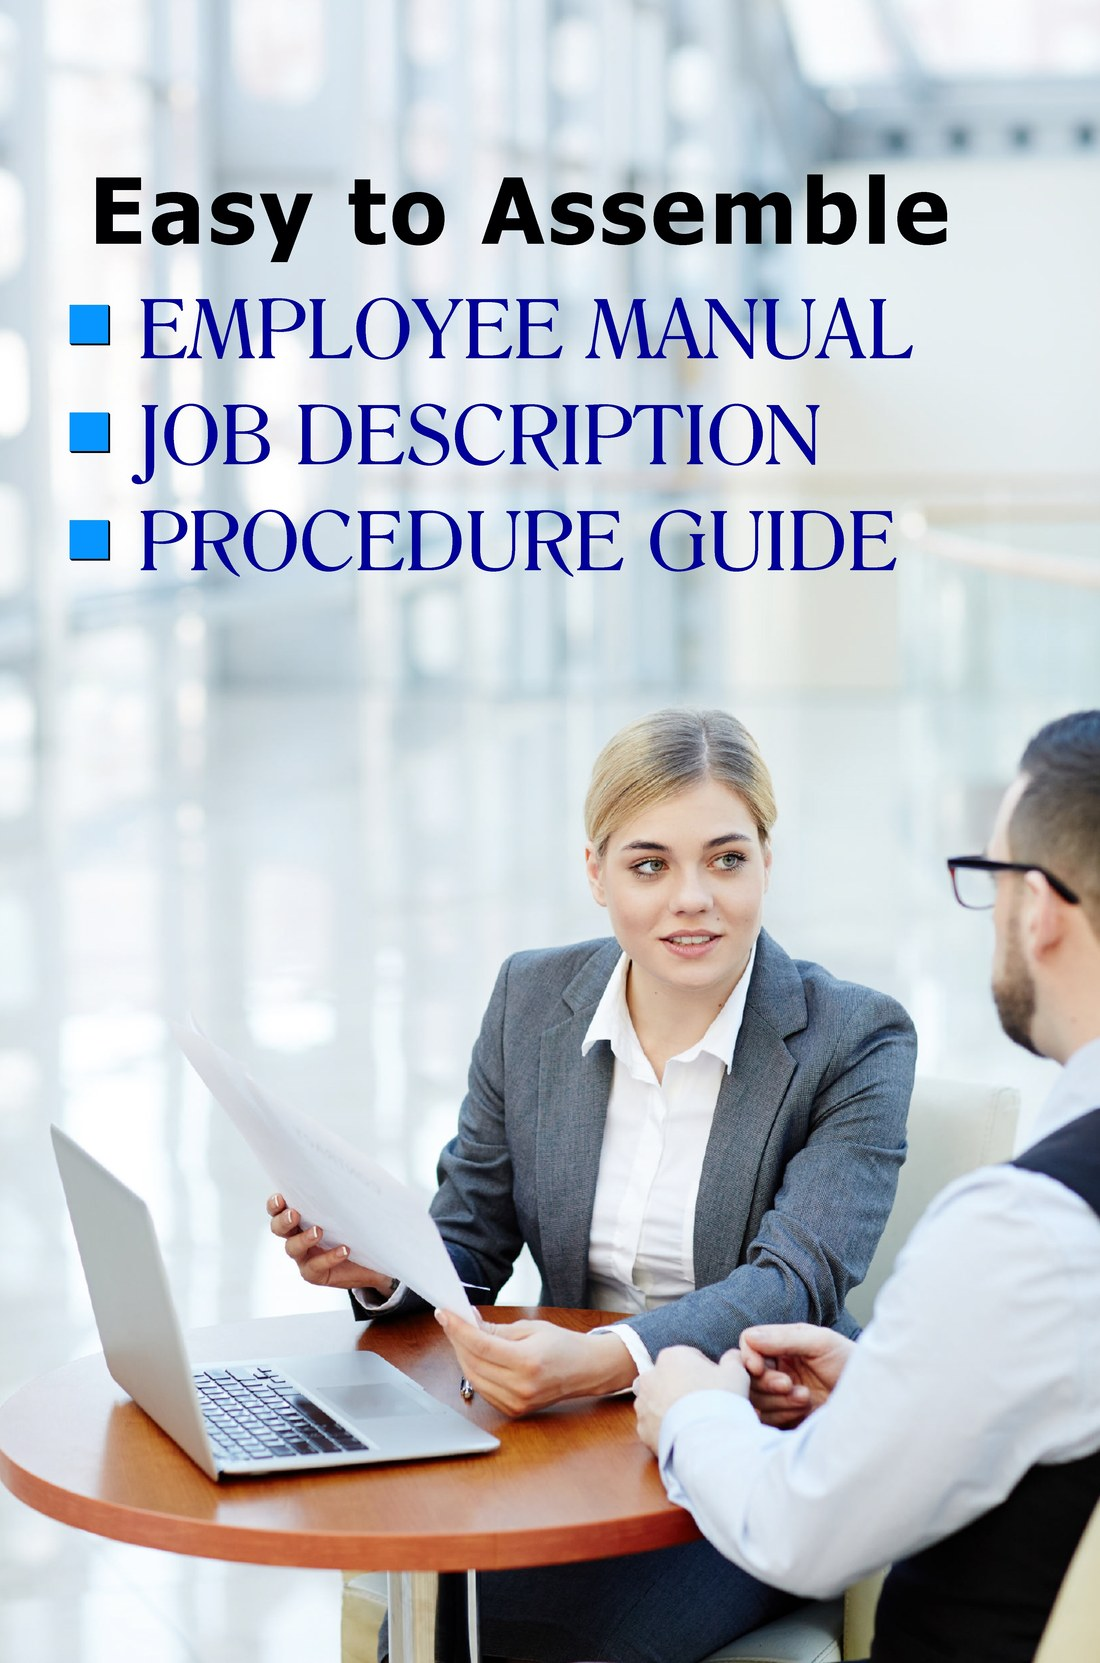 L7081 - How to Assemble an Employee Manual